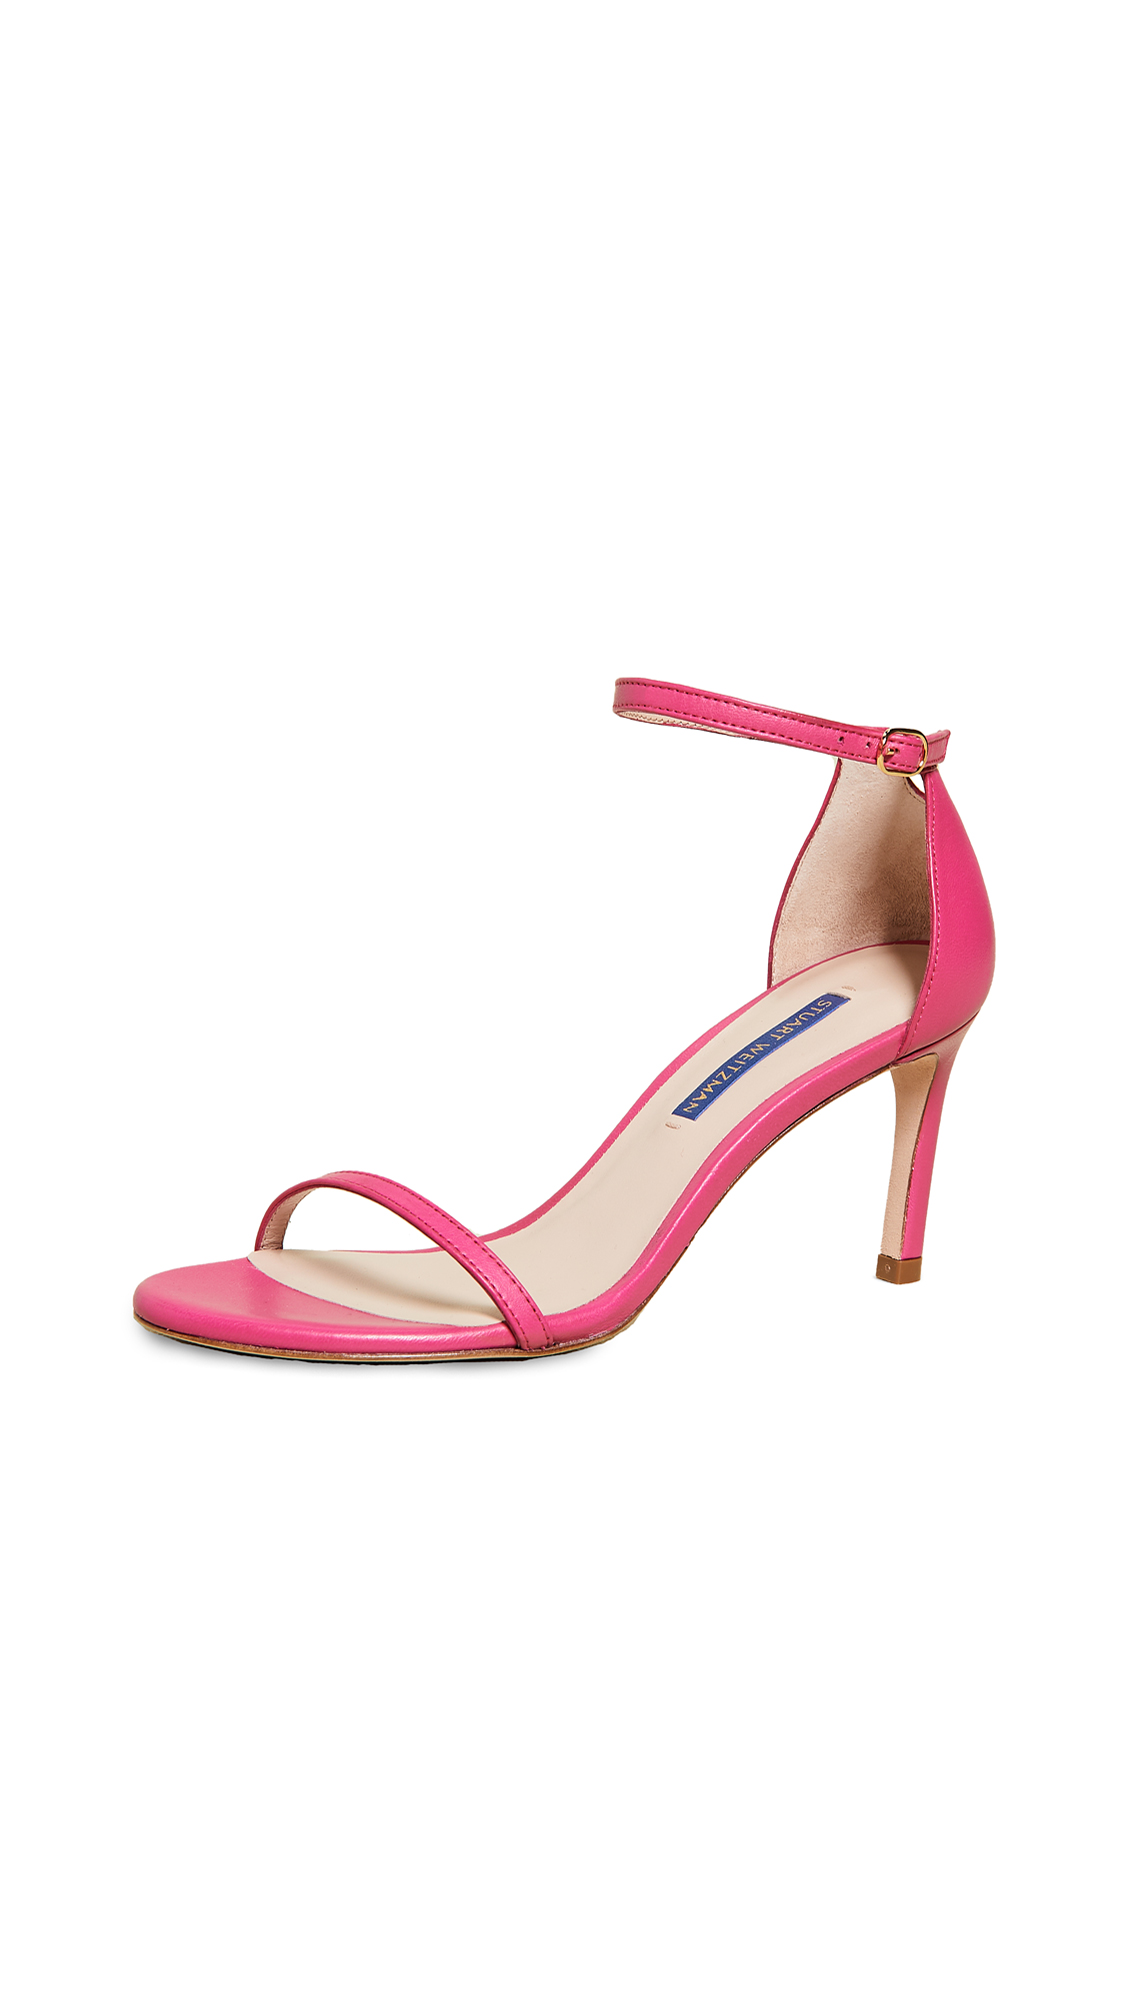 Stuart Weitzman Nudist 80mm Sandals - Flamingo